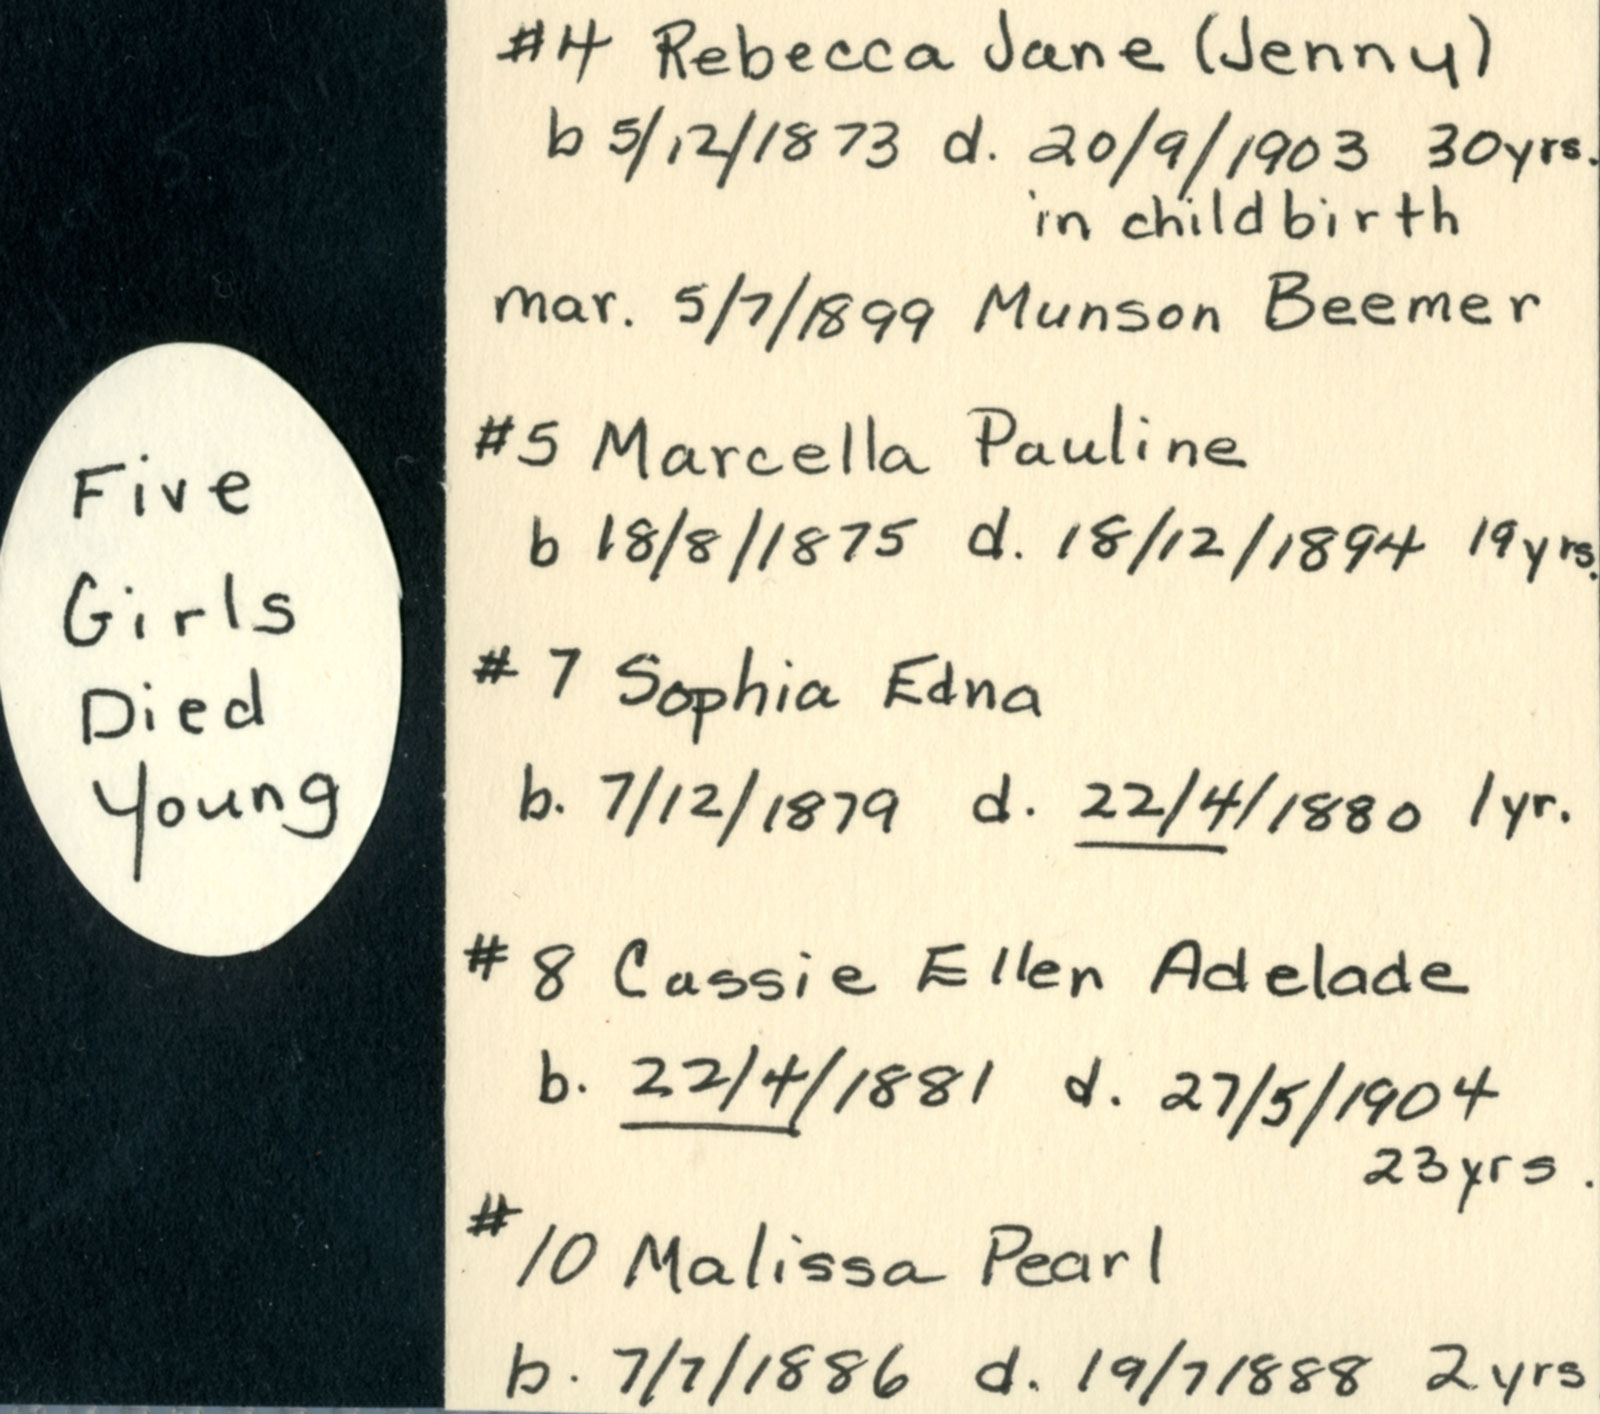 Five Allen Family Girls Died Young, Huron Shores, 1873 - 1904